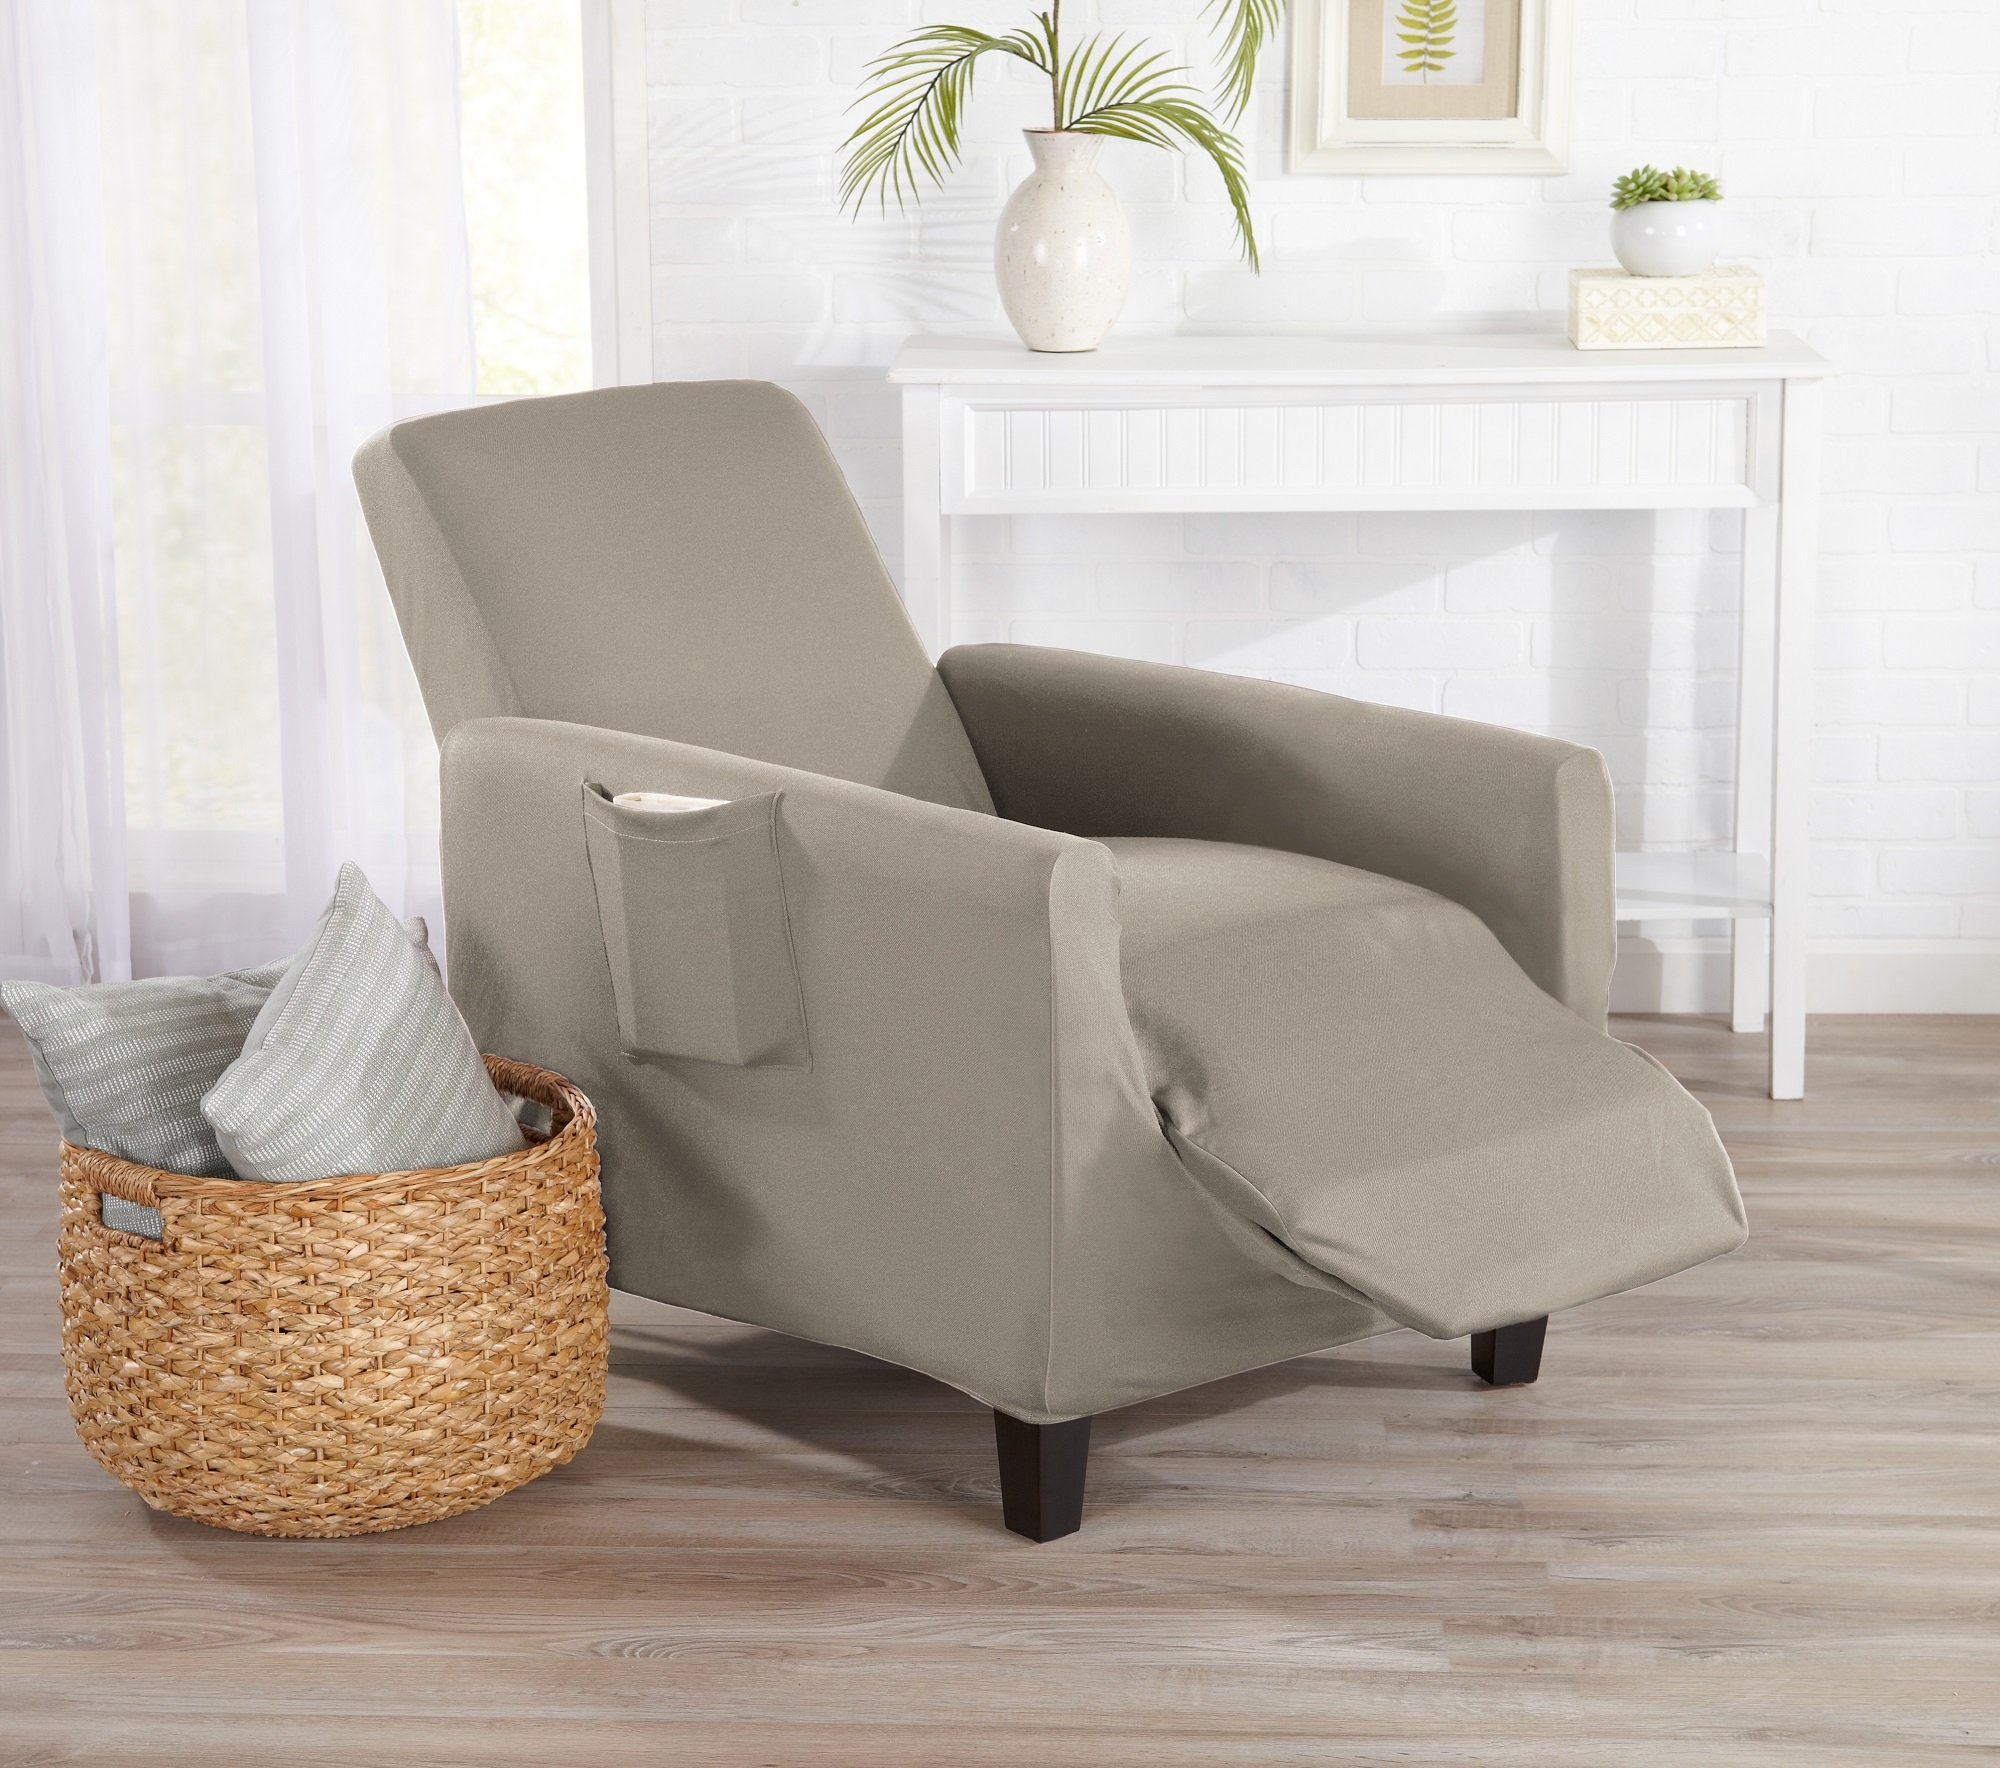 Great Bay Home One Piece Recliner Silpcover, Slip Resistant, Stylish Furniture Cover/Protector. Dawson Collection Basic Strapless Slipcover by Brand. (Recliner, Silver Cloud)